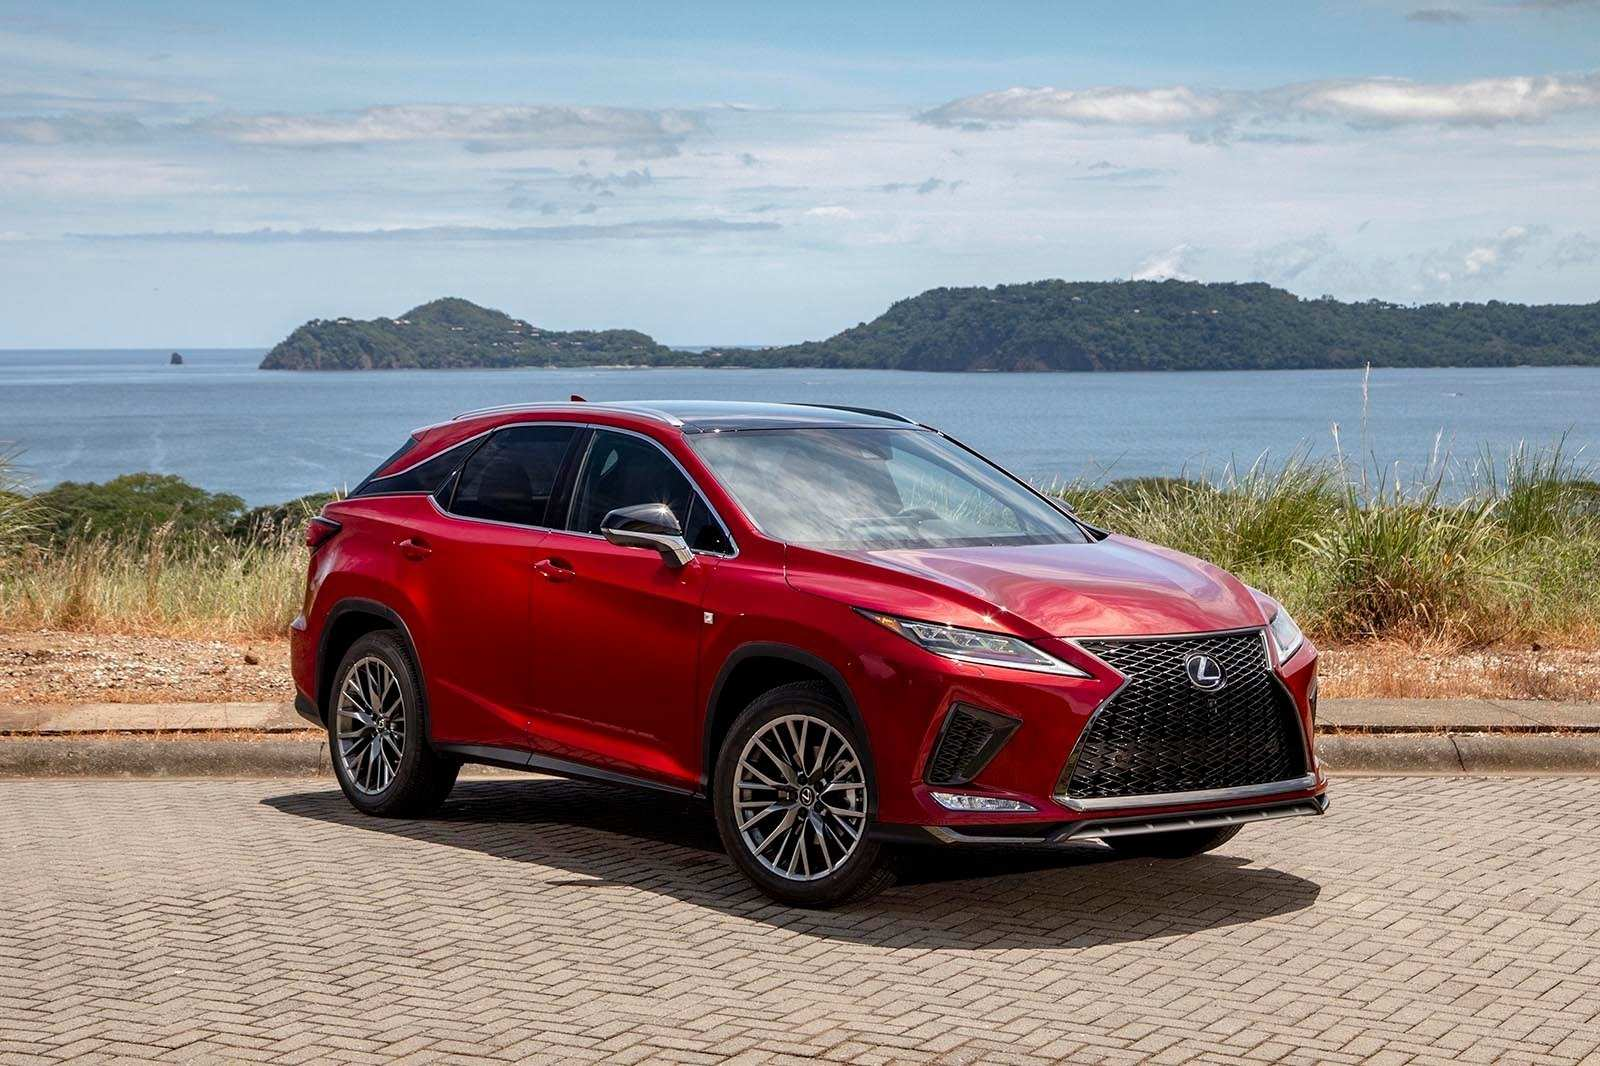 36 Gallery of When Do 2020 Lexus Come Out Speed Test with When Do 2020 Lexus Come Out